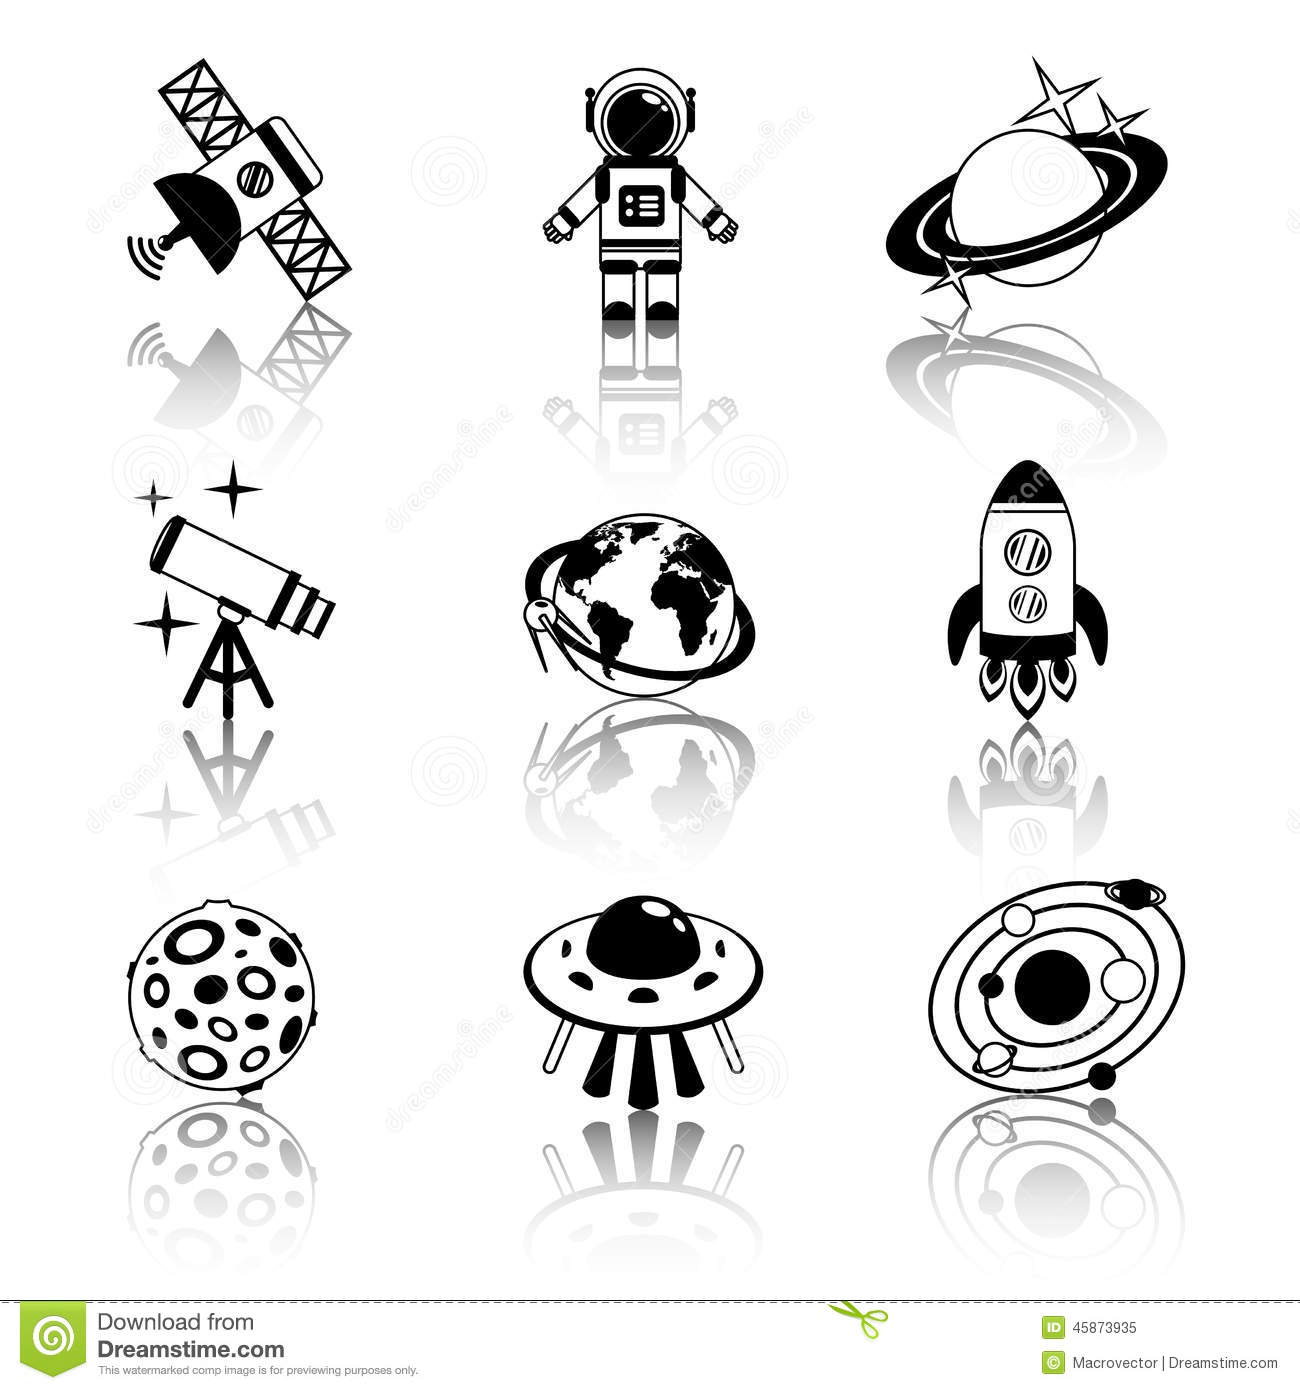 astronomy clipart black and white - photo #44